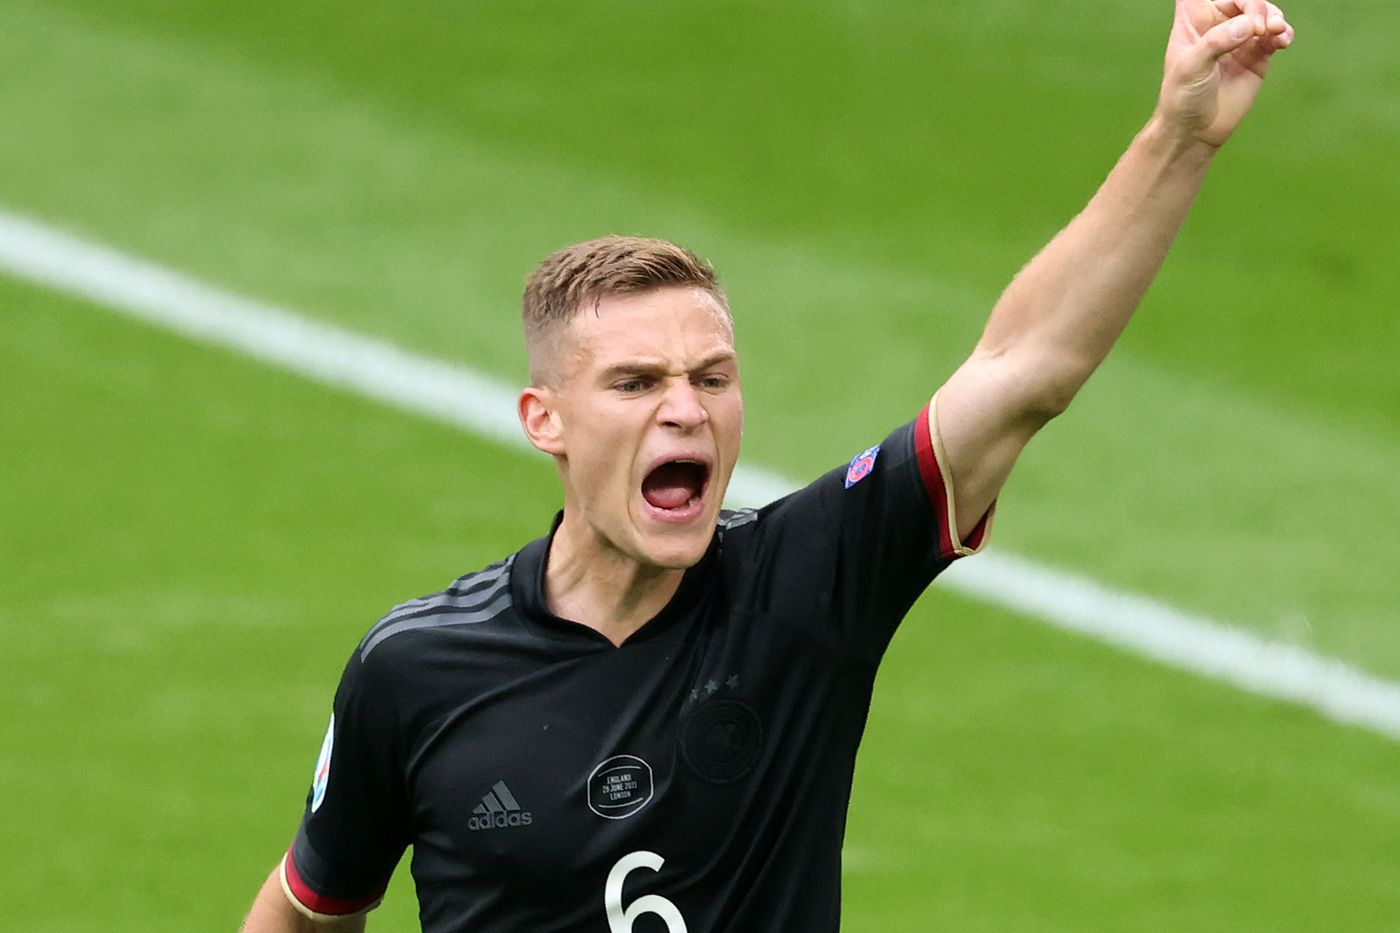 Bayern Munich signs contract expansion with Joshua Kimmich till 2025